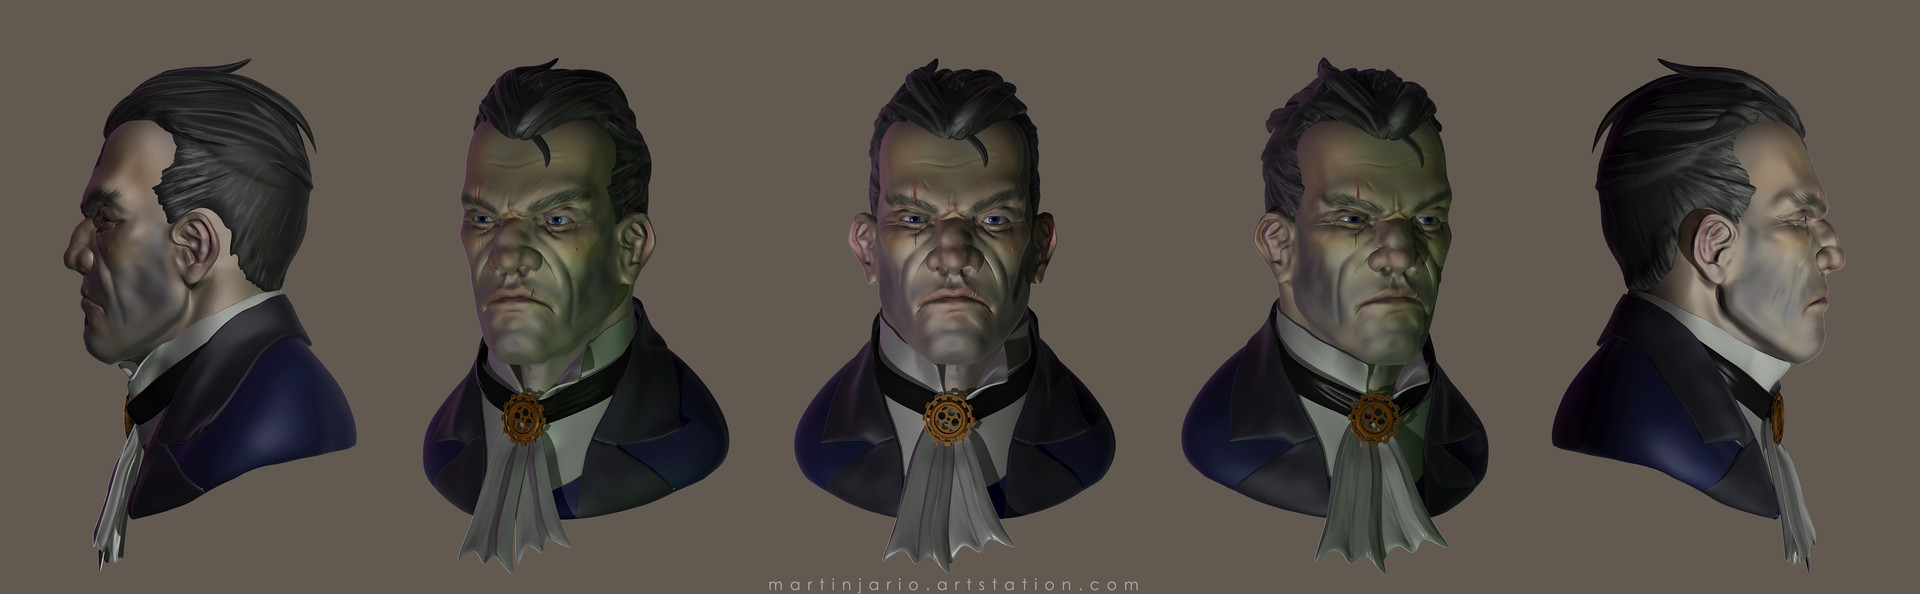 Martin jario martinjario dishonored views color zbrush